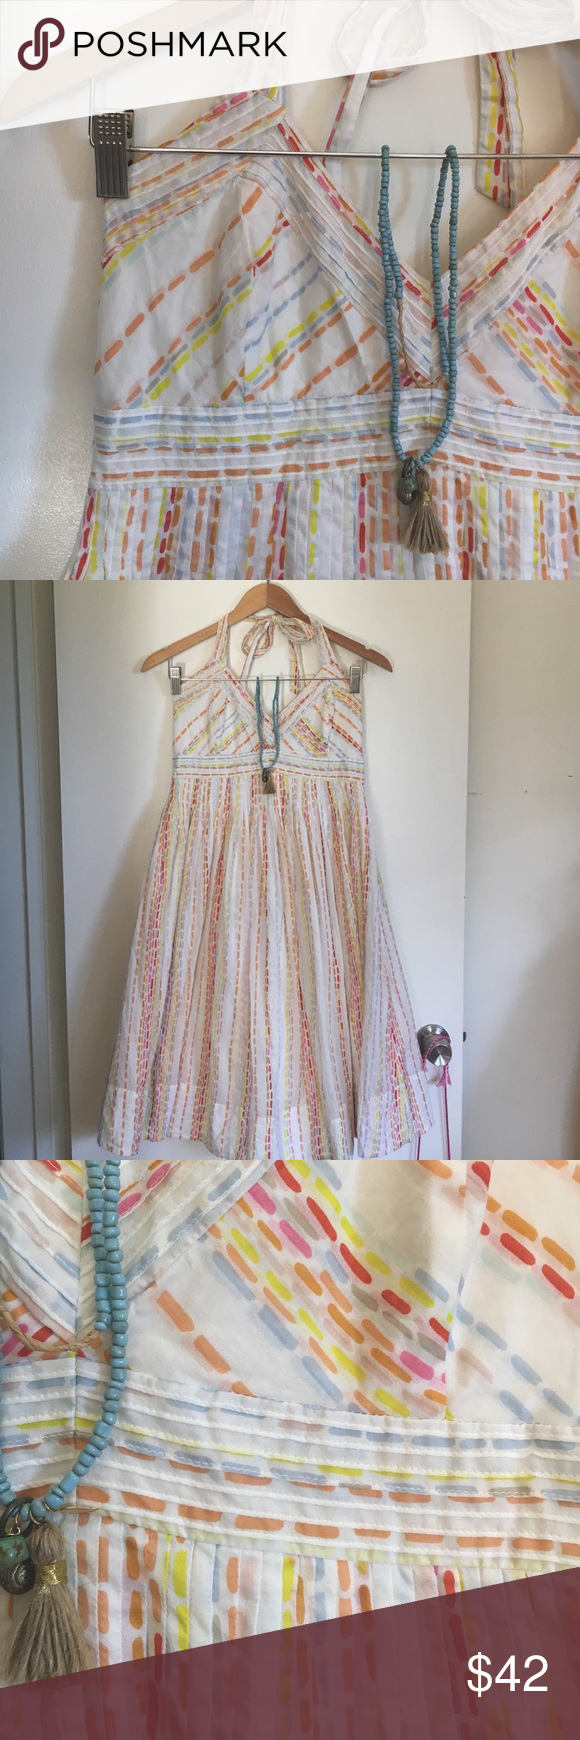 Beautiful Cotton Halter Dress. Lined Beautiful Cotton Halter Dress. Lined. Perfect for spring or summer. Super soft. Worn once! Zipper in back. Tie at back of neck. Anthropologie Dresses